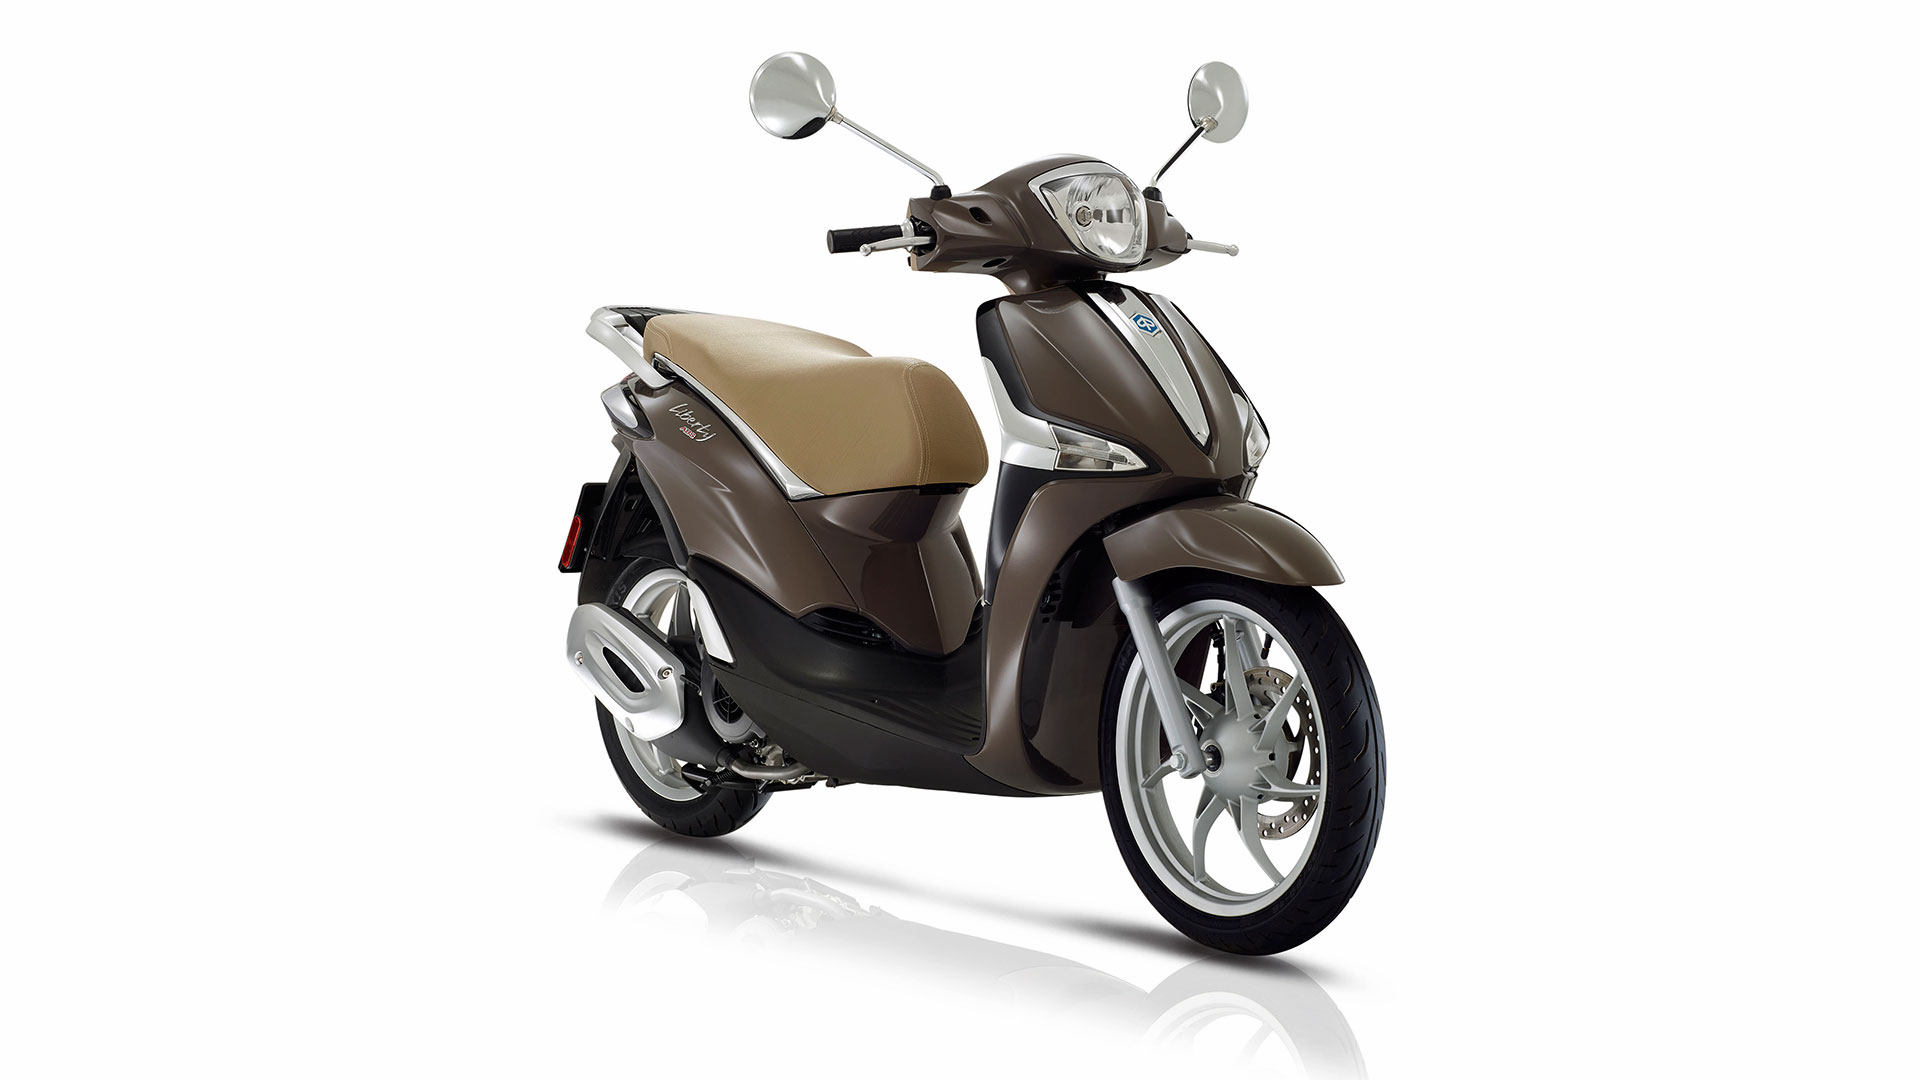 Achat Piaggio Liberty ABS 125 cm3 neuf à Nice chez Scoot Center-1